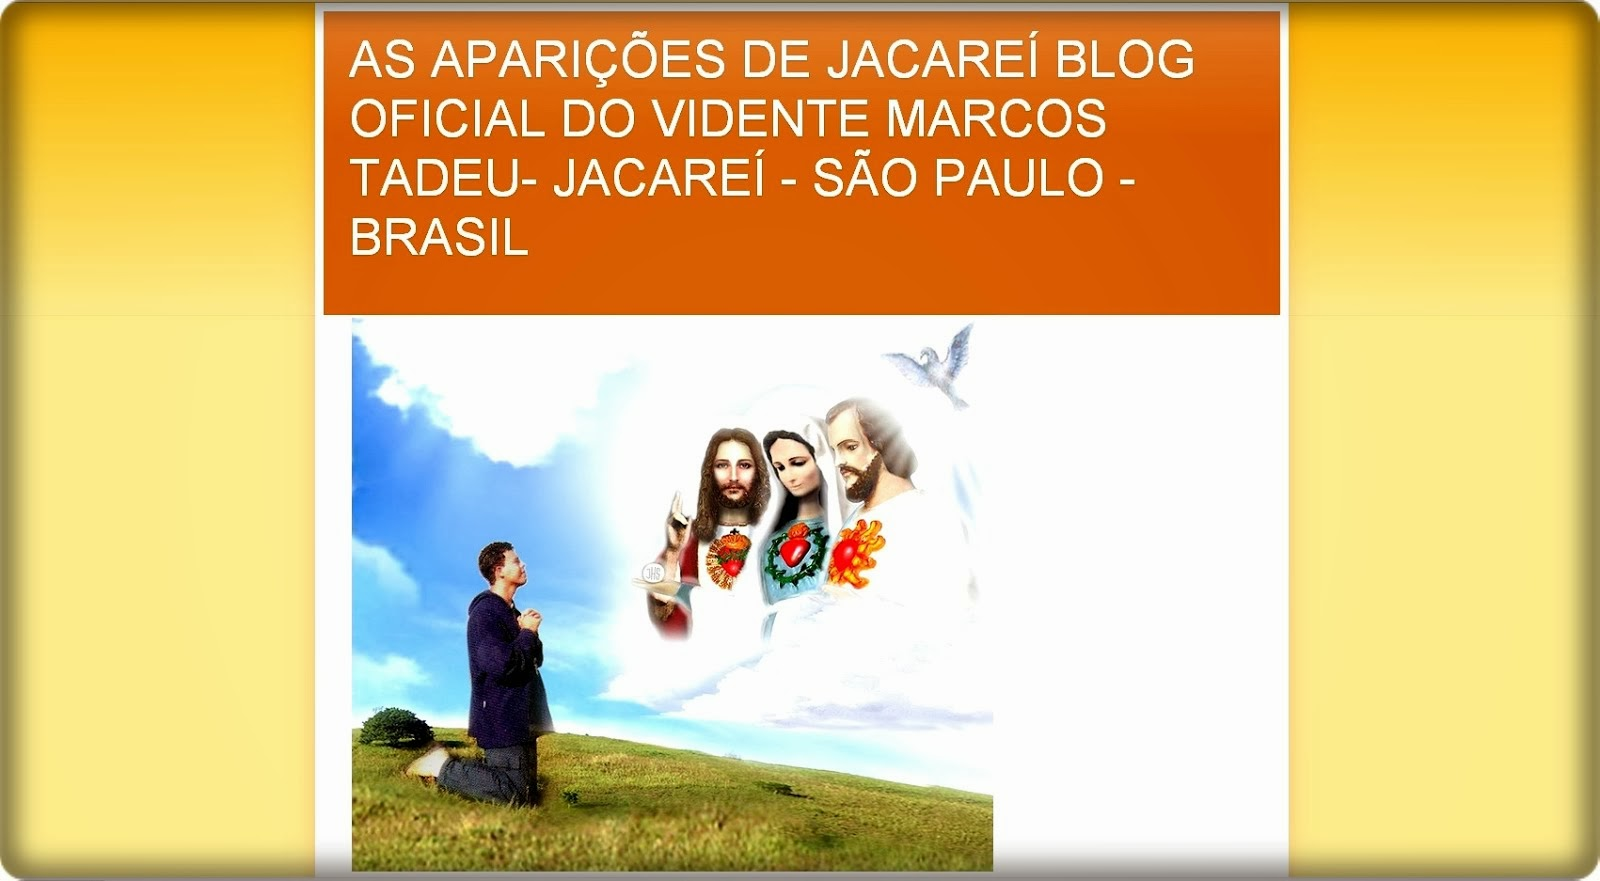 BLOG  OFICIAL  DO  VIDENTE MARCOS  TADEU  ! ! !